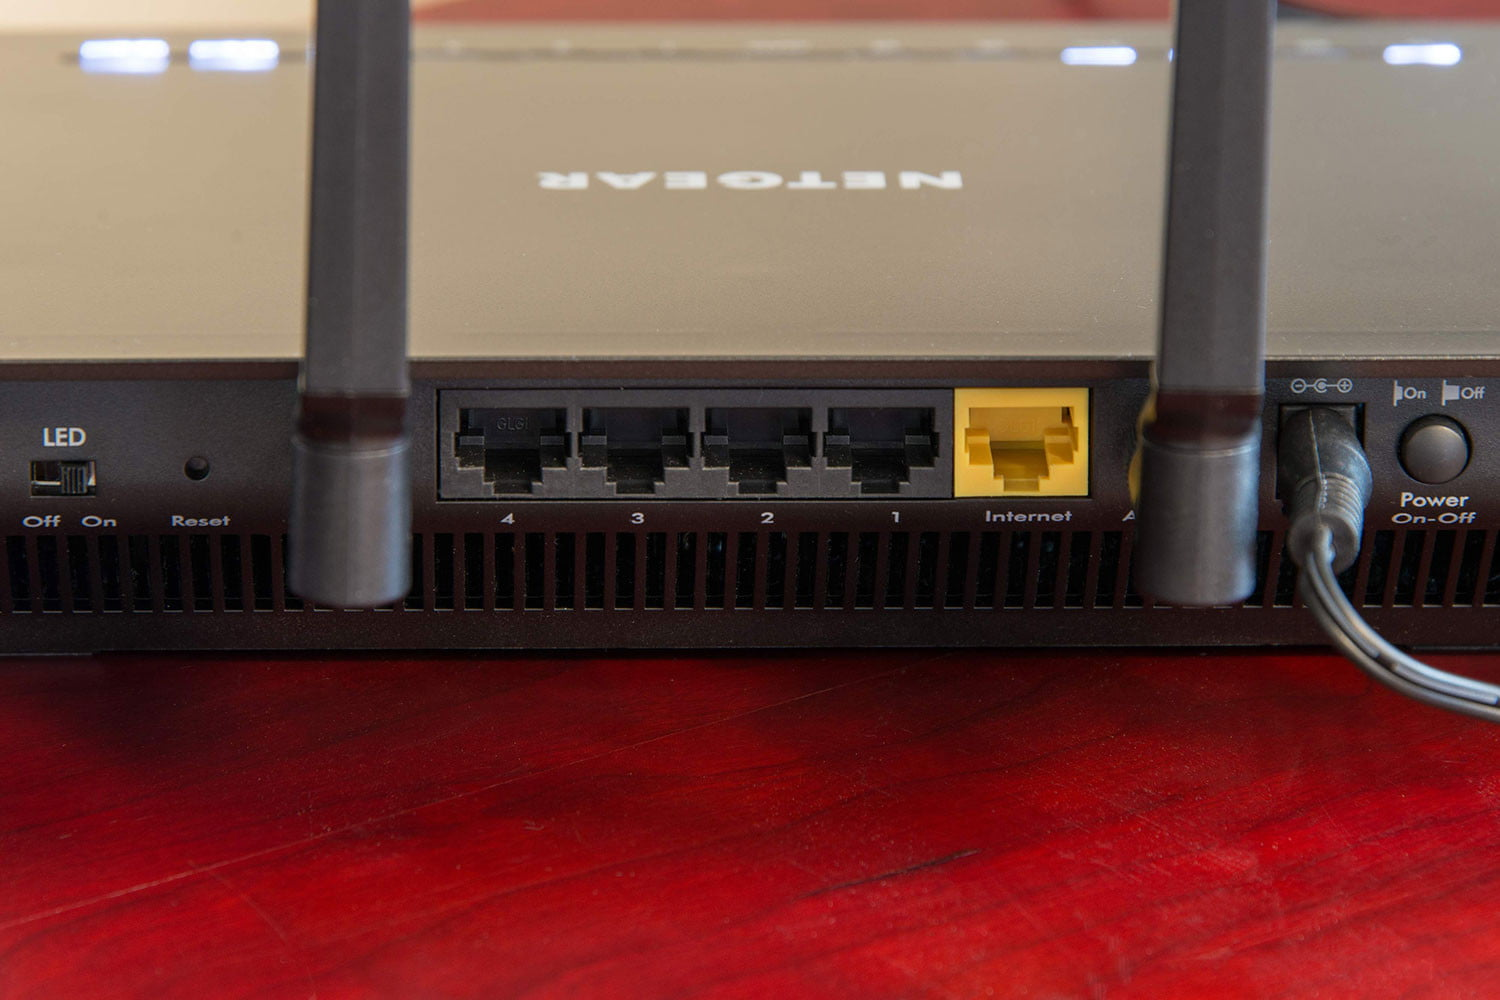 How To Set Up A Wireless Router | Digital Trends